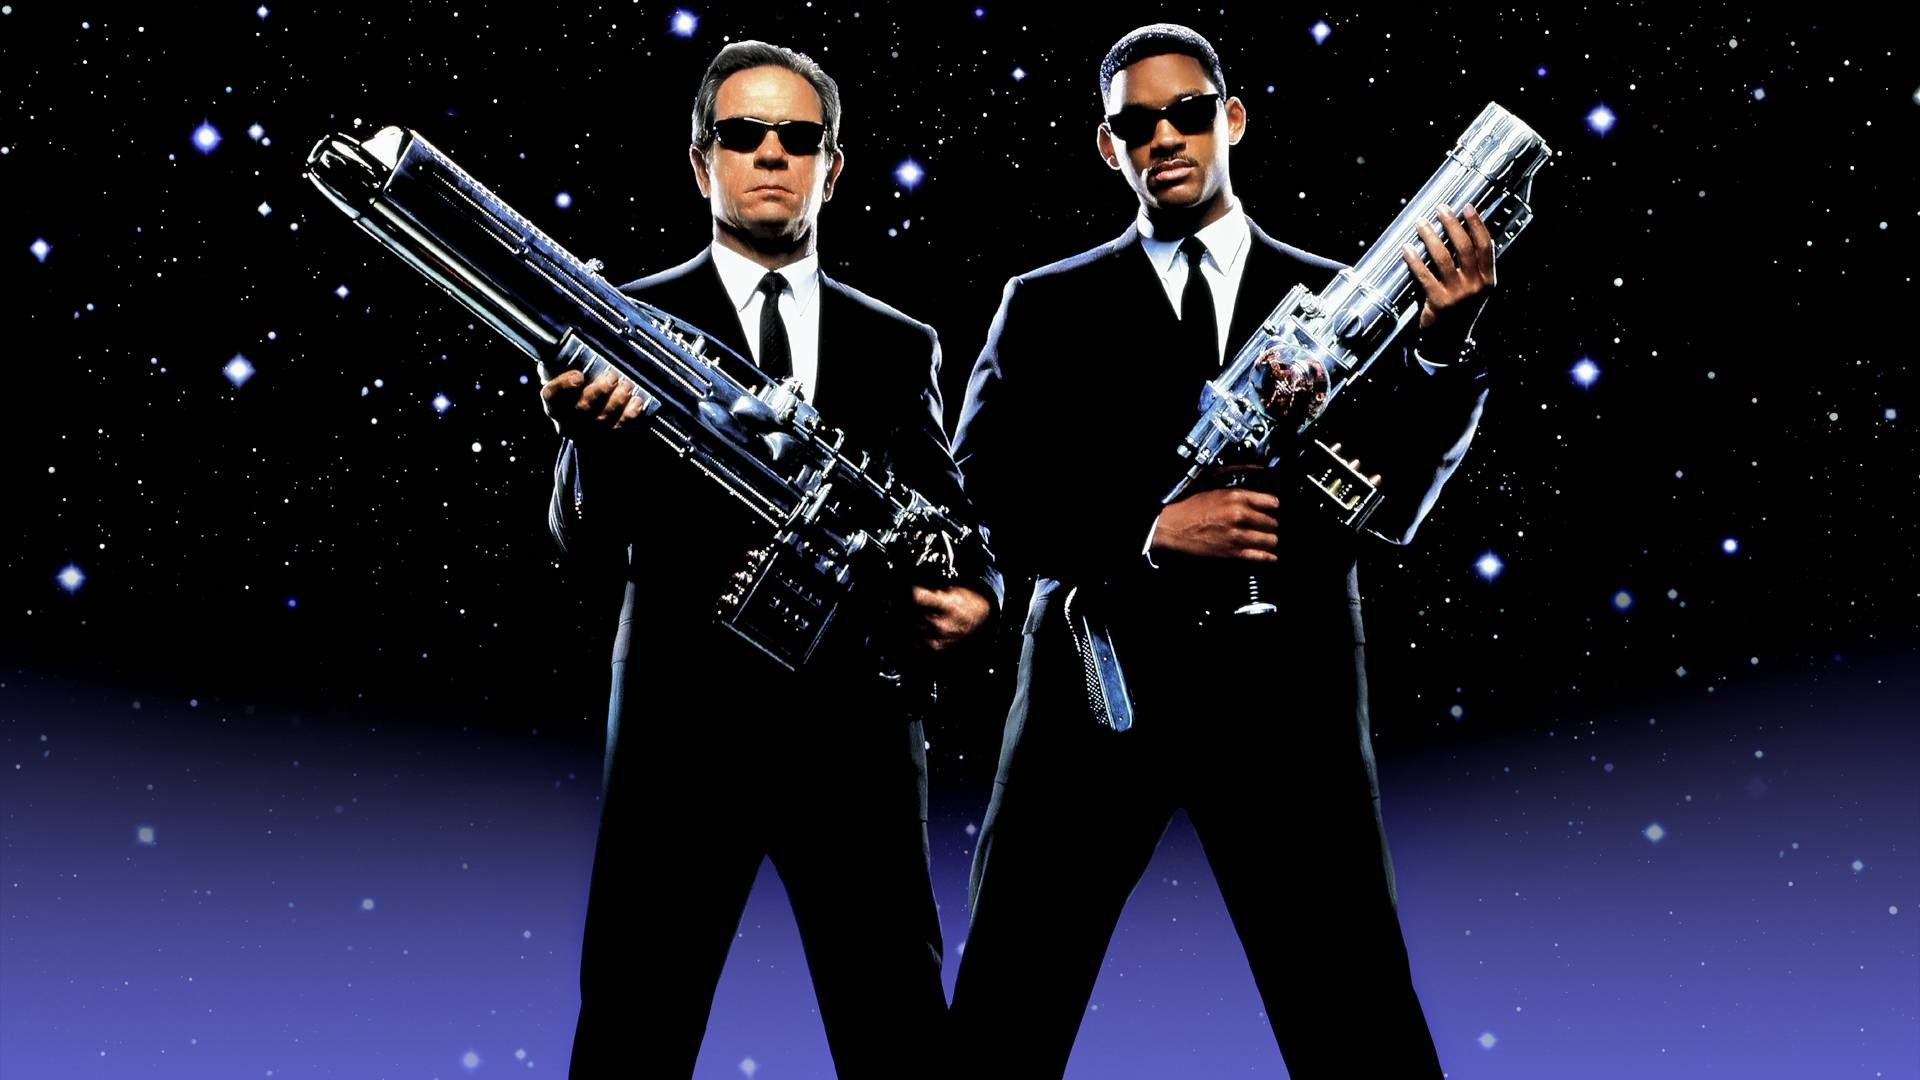 Men in Black is getting another sequel and we know when